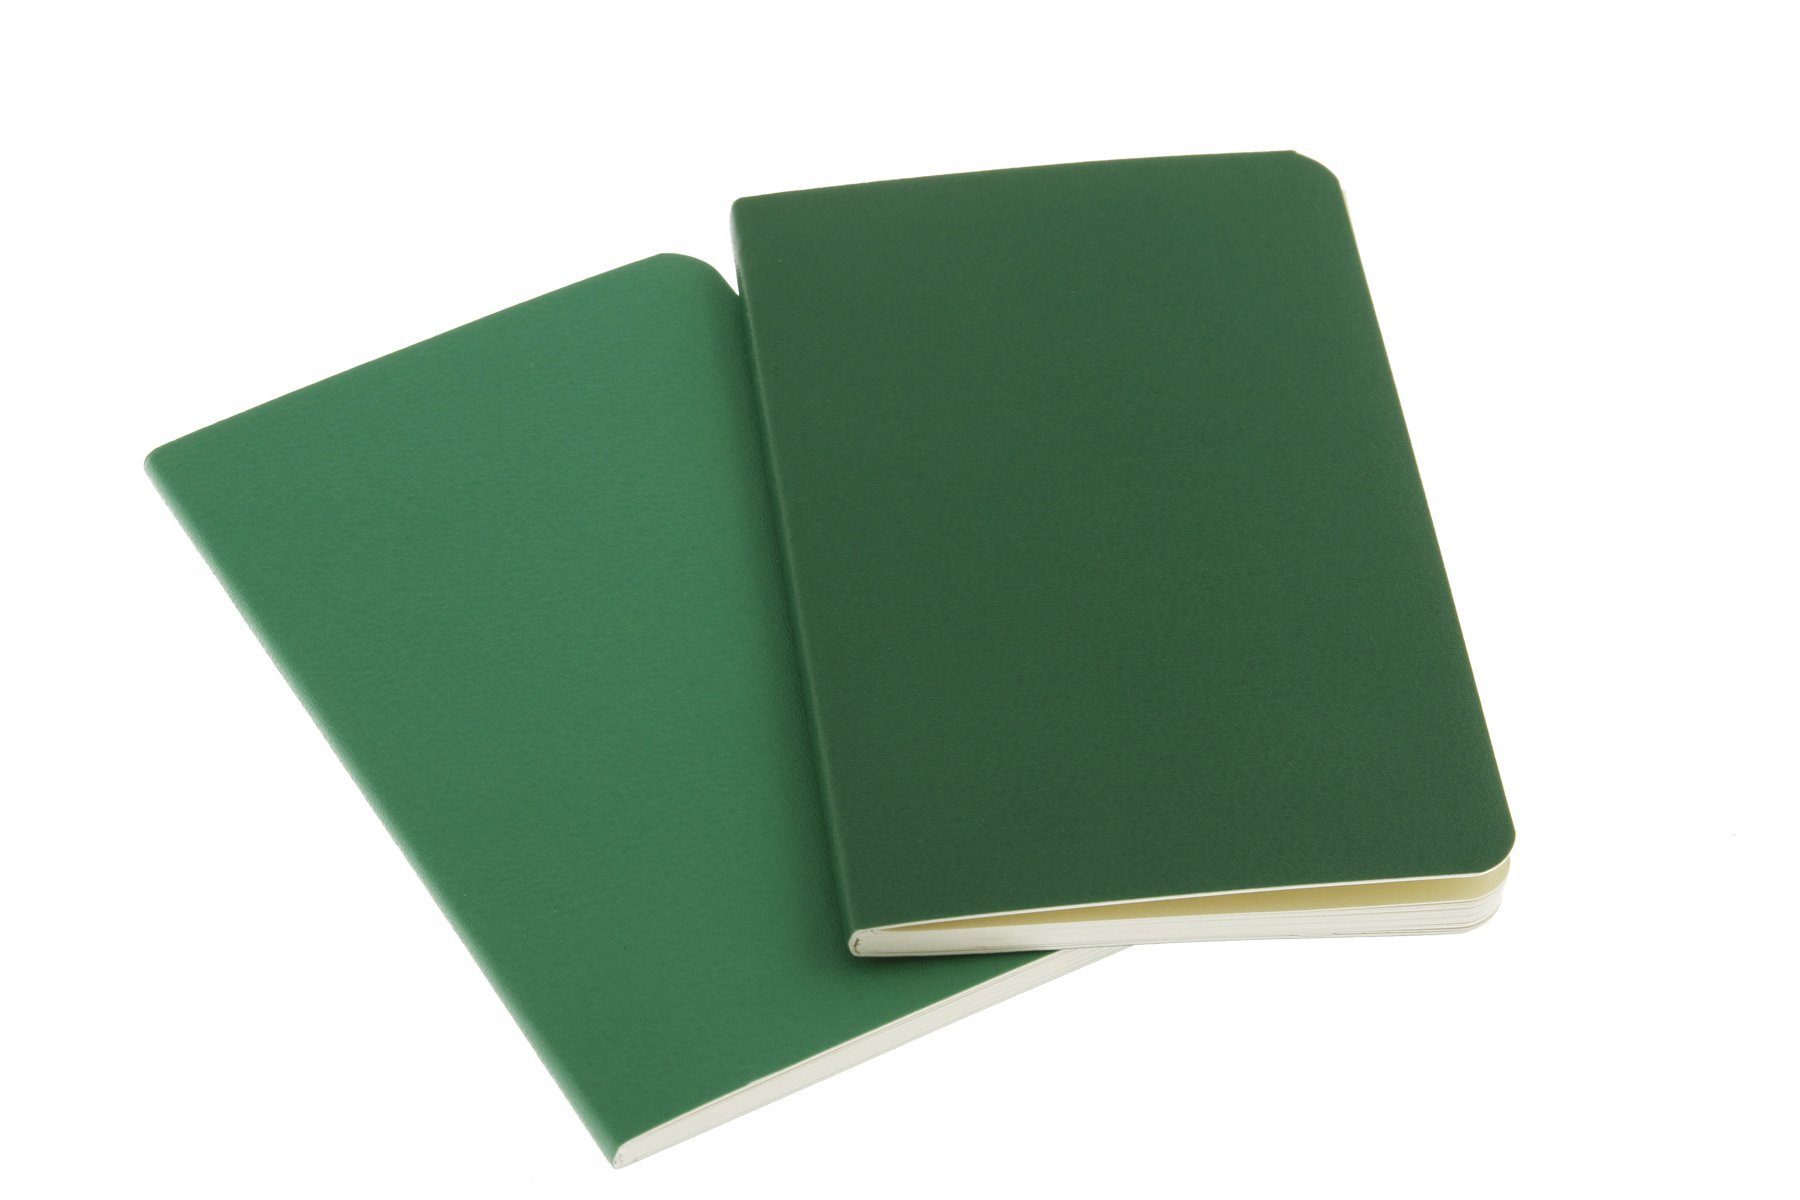 Moleskine Volant Notebook (Set of 2), Pocket, Ruled, Emerald Green, Oxide Green, Soft Cover (3.5 x 5.5) by Moleskine (Image #3)